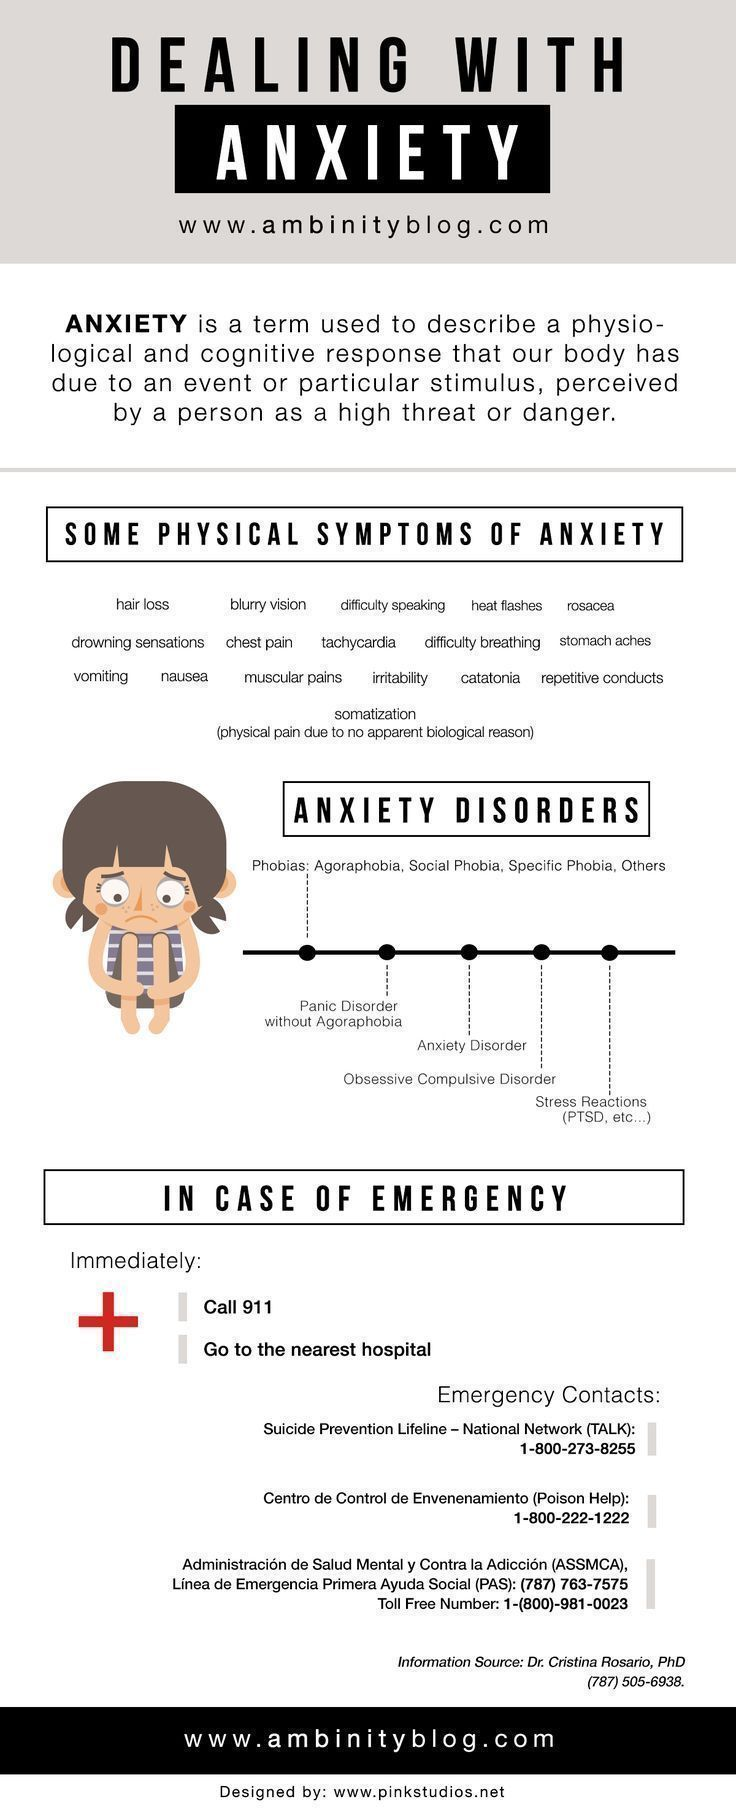 Dealing with Anxiety #anxiety #disorders #selfhelp